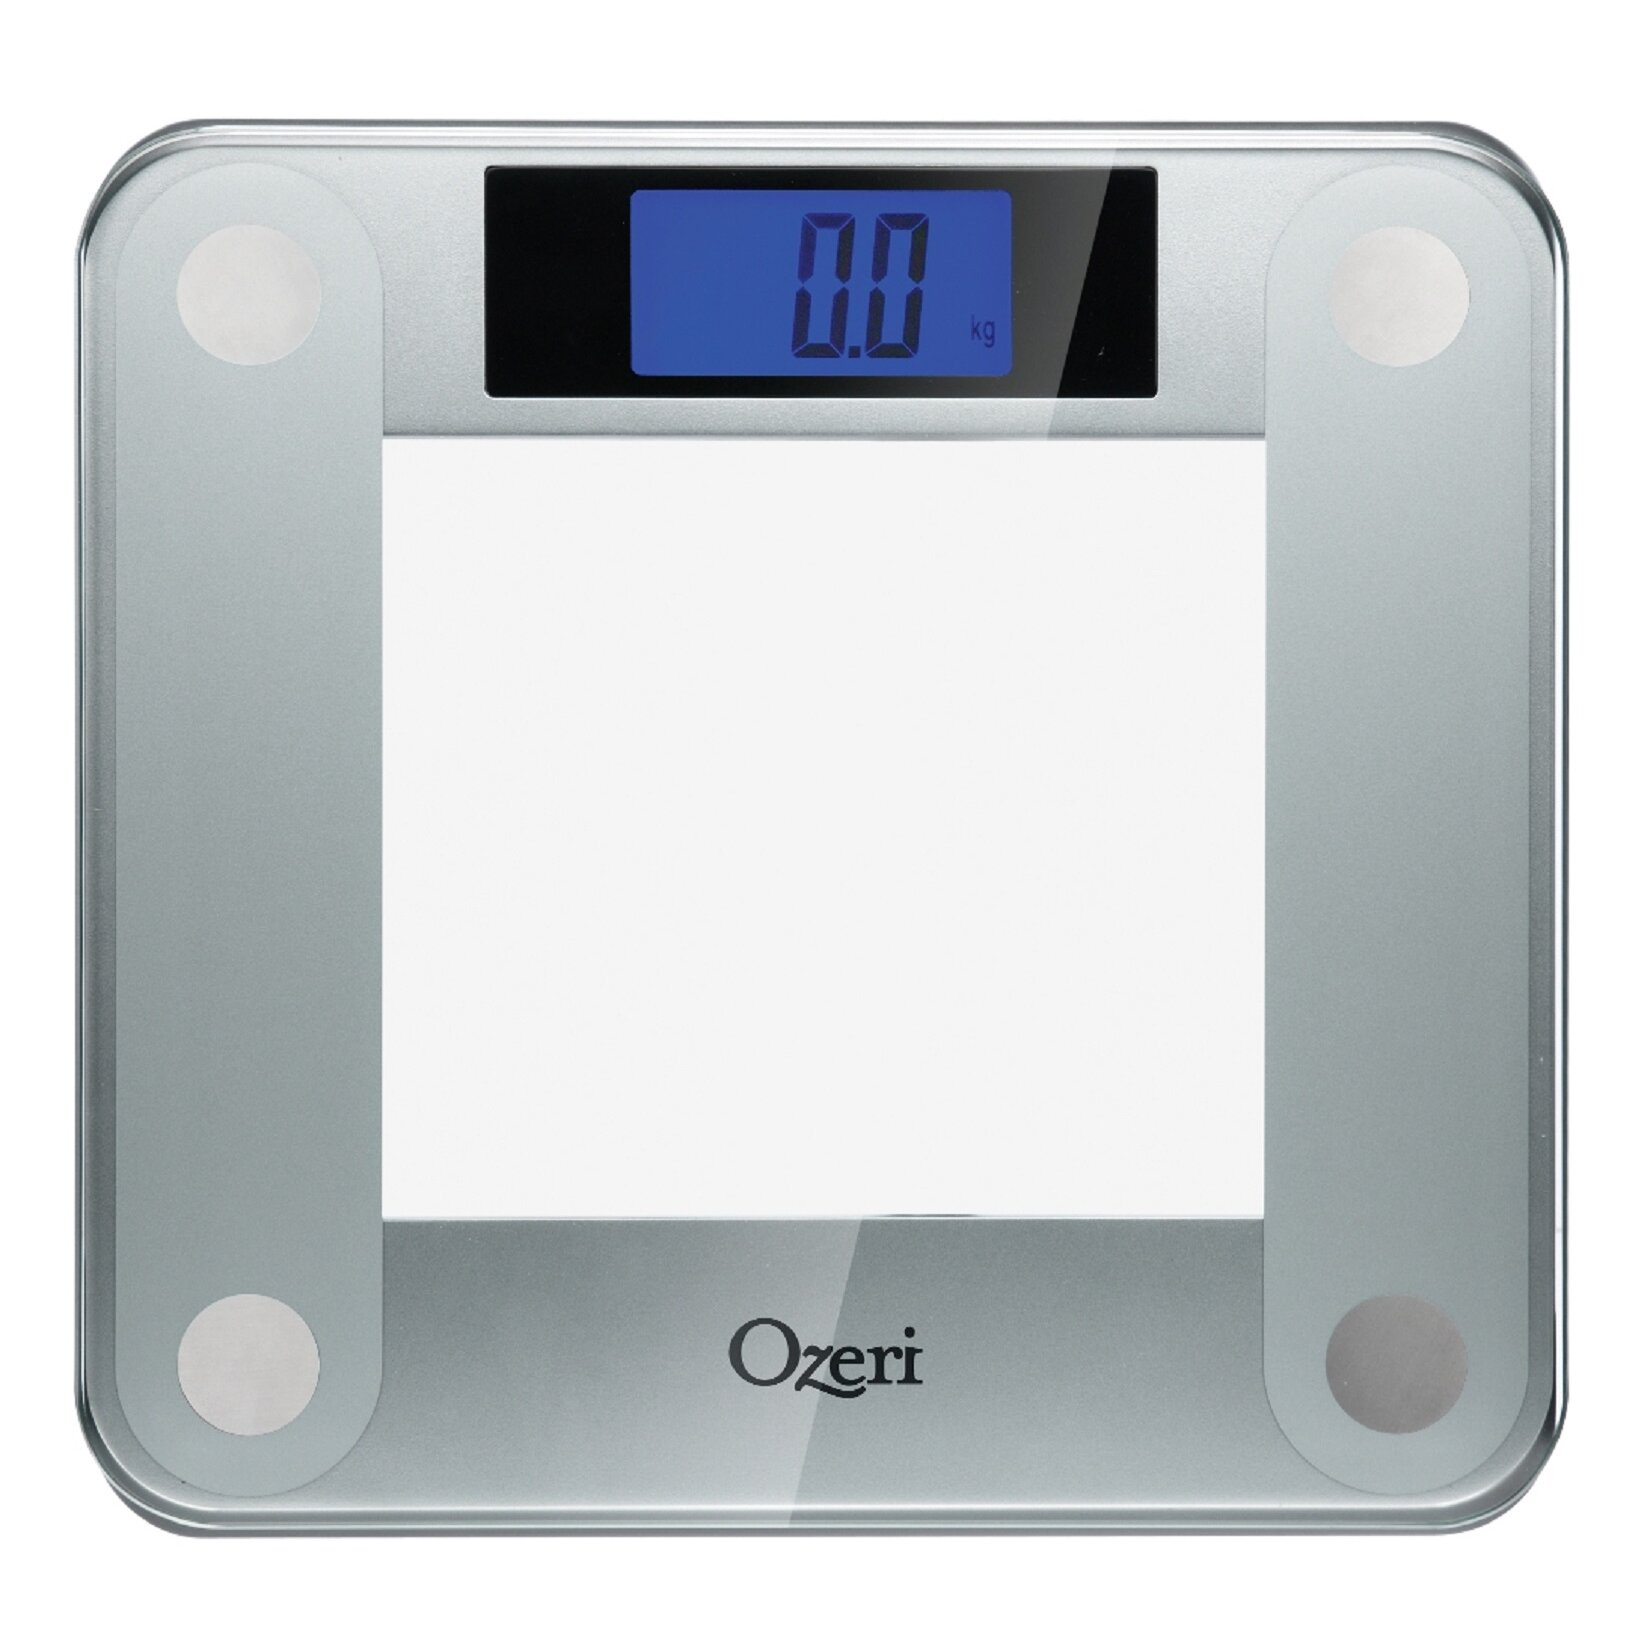 Calibrate digital bathroom scale - Precision Ii Digital Bathroom Scale 440 Lbs Capacity With Weight Change Detection Technology